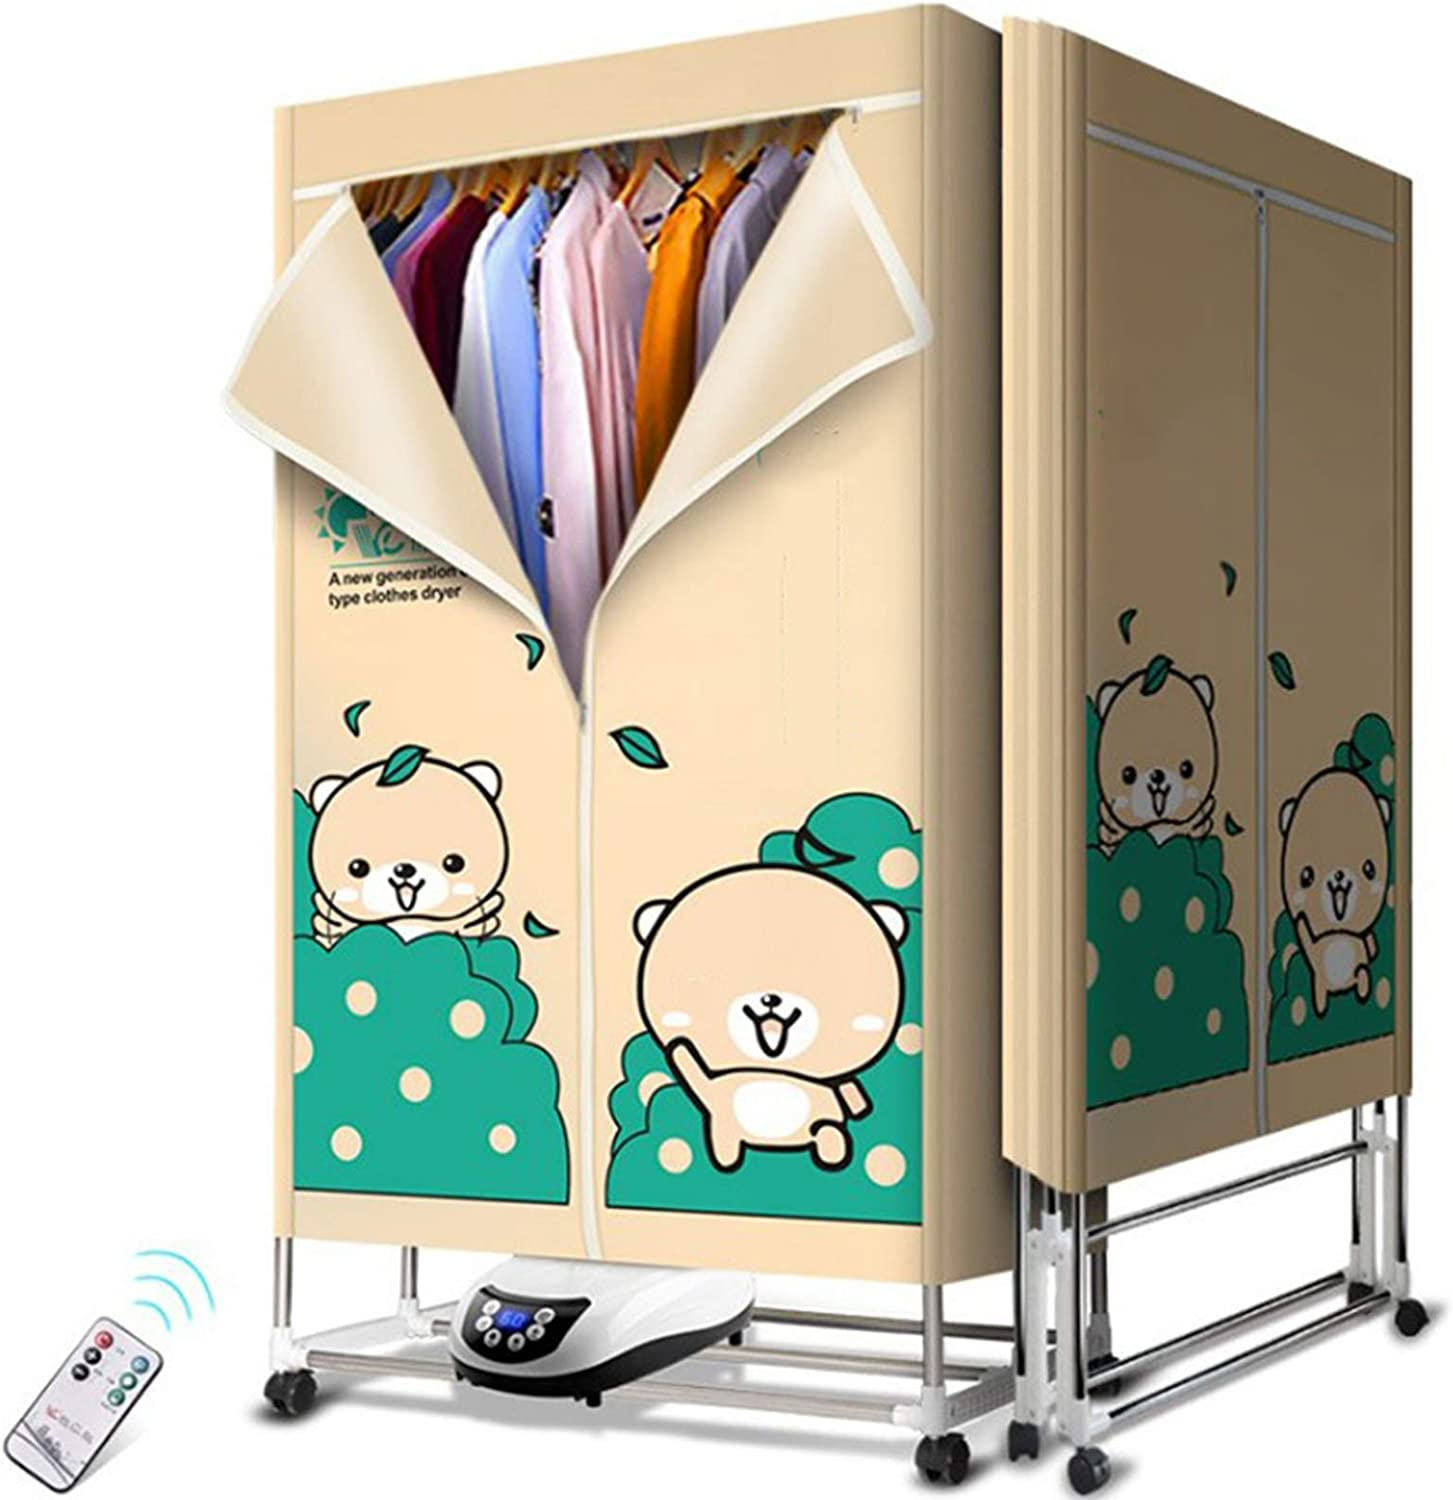 N \ A Industry No. 1 Foldable Electric Clothes 1500w Larg 15kg Dryer Power High Max 54% OFF